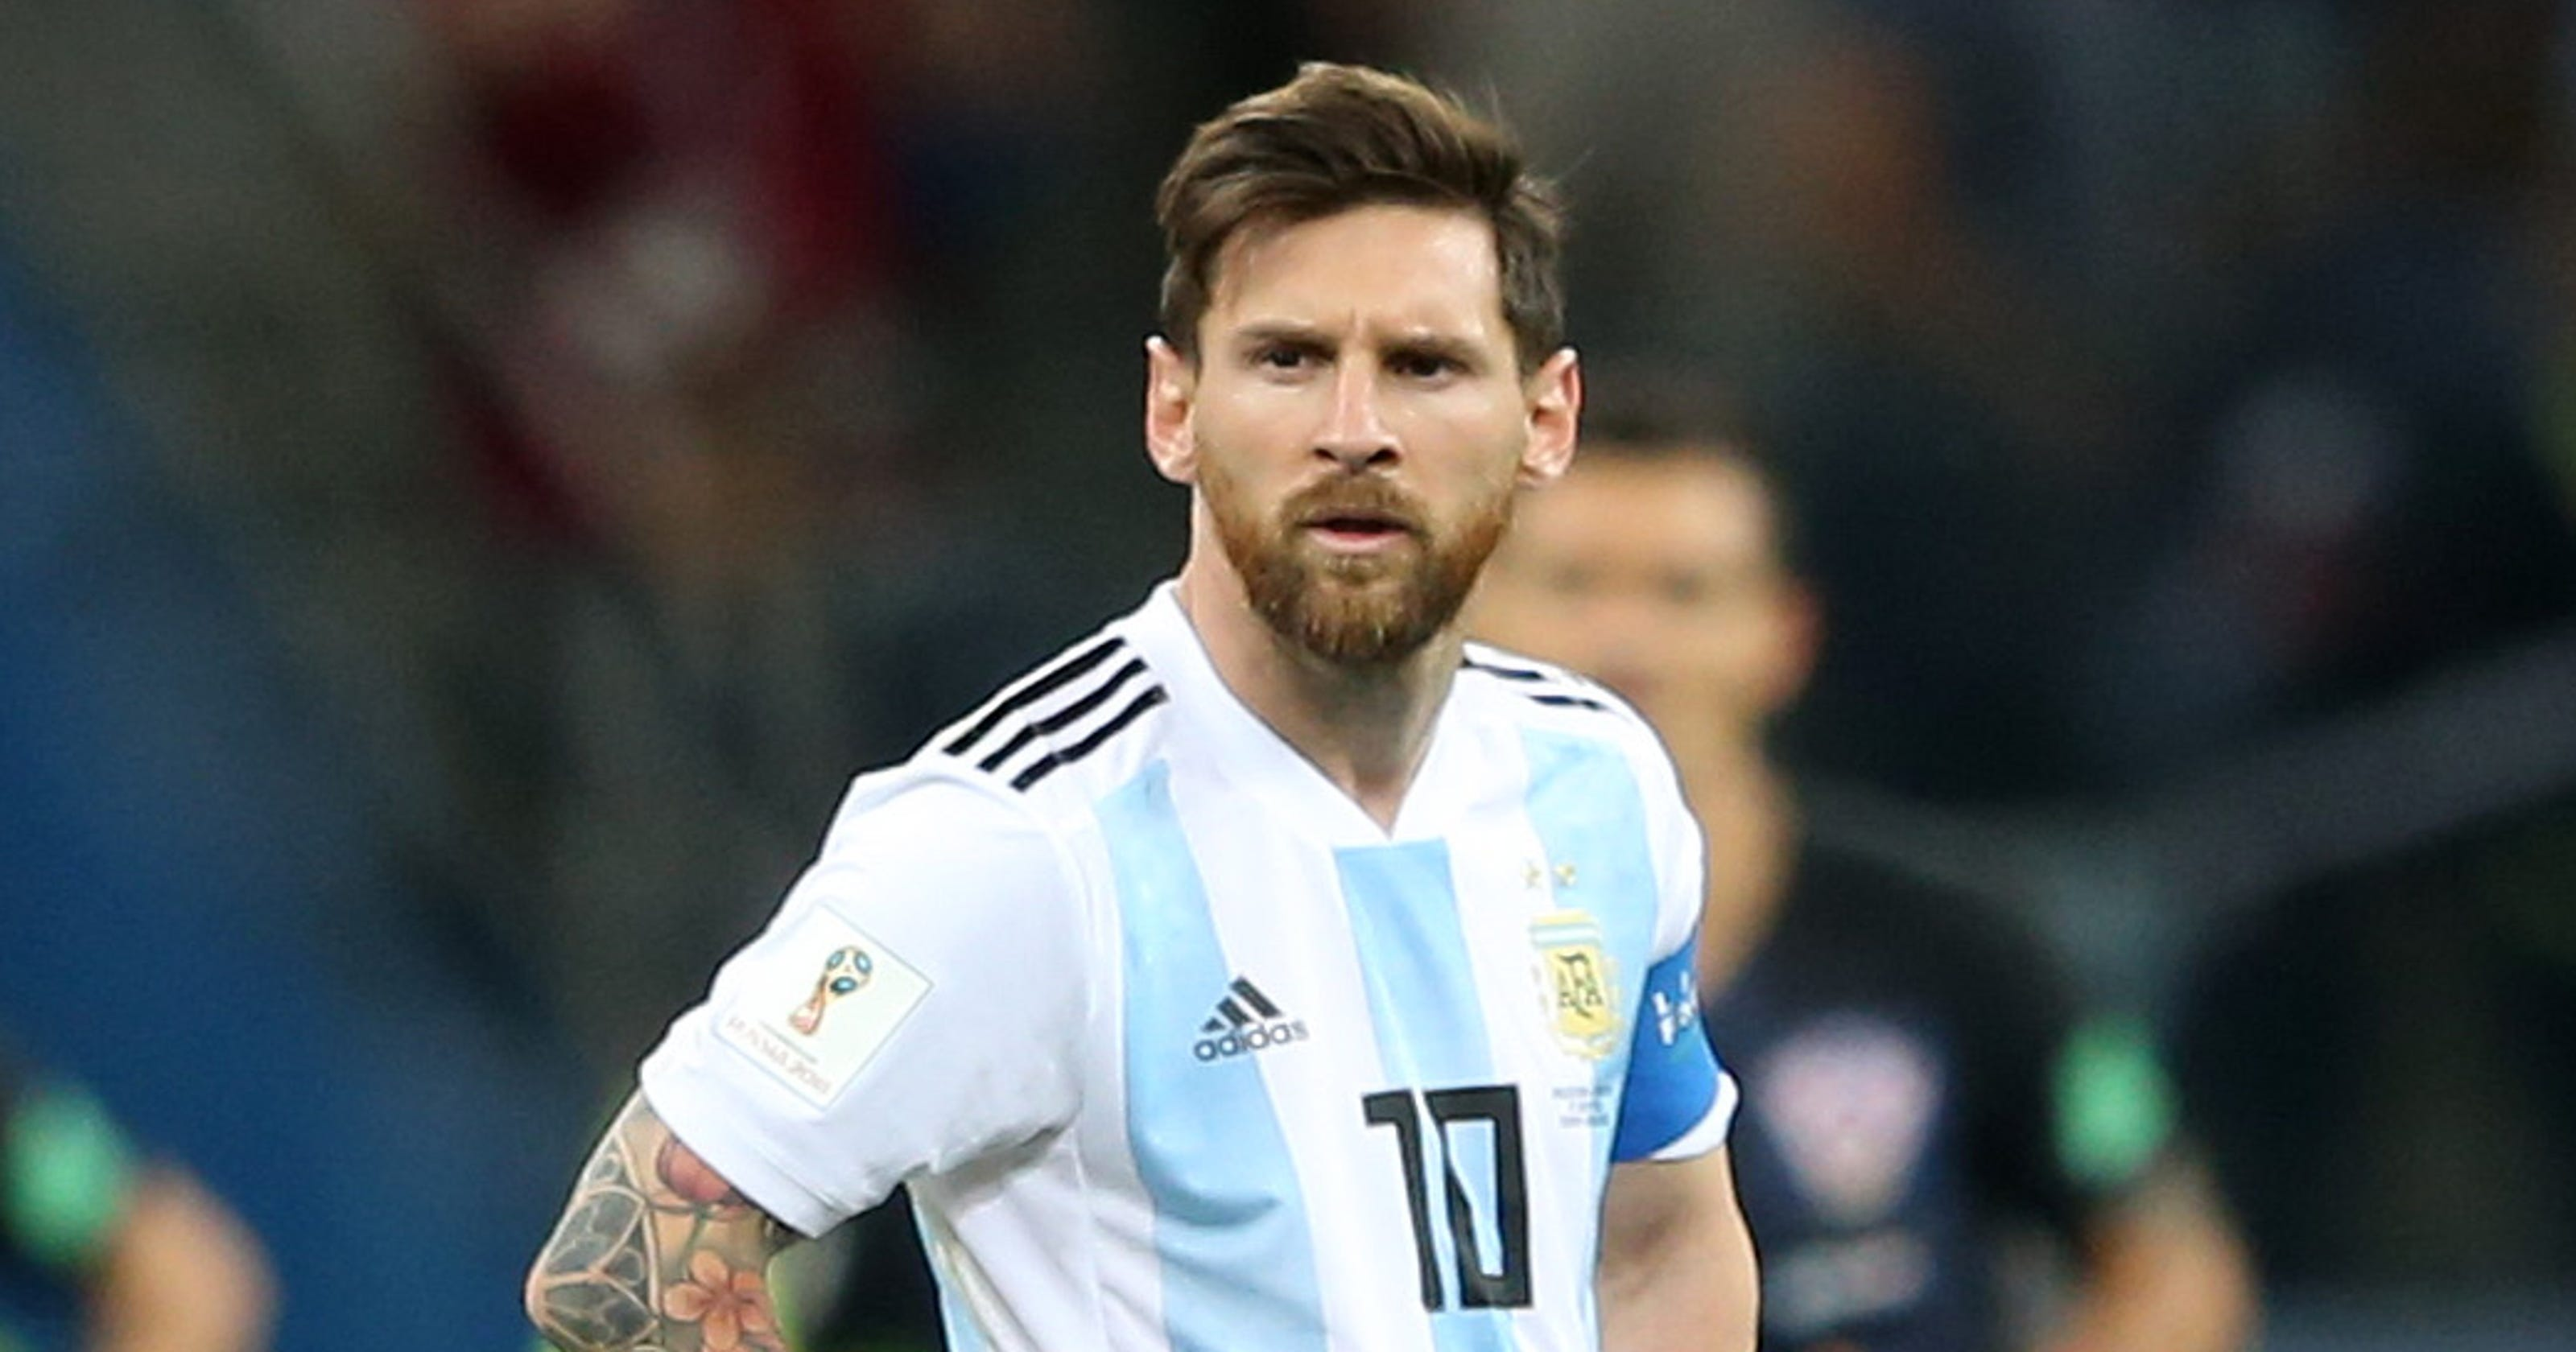 2d4898f0af0 World Cup: Lionel Messi feels burden, pain of playing for Argentina